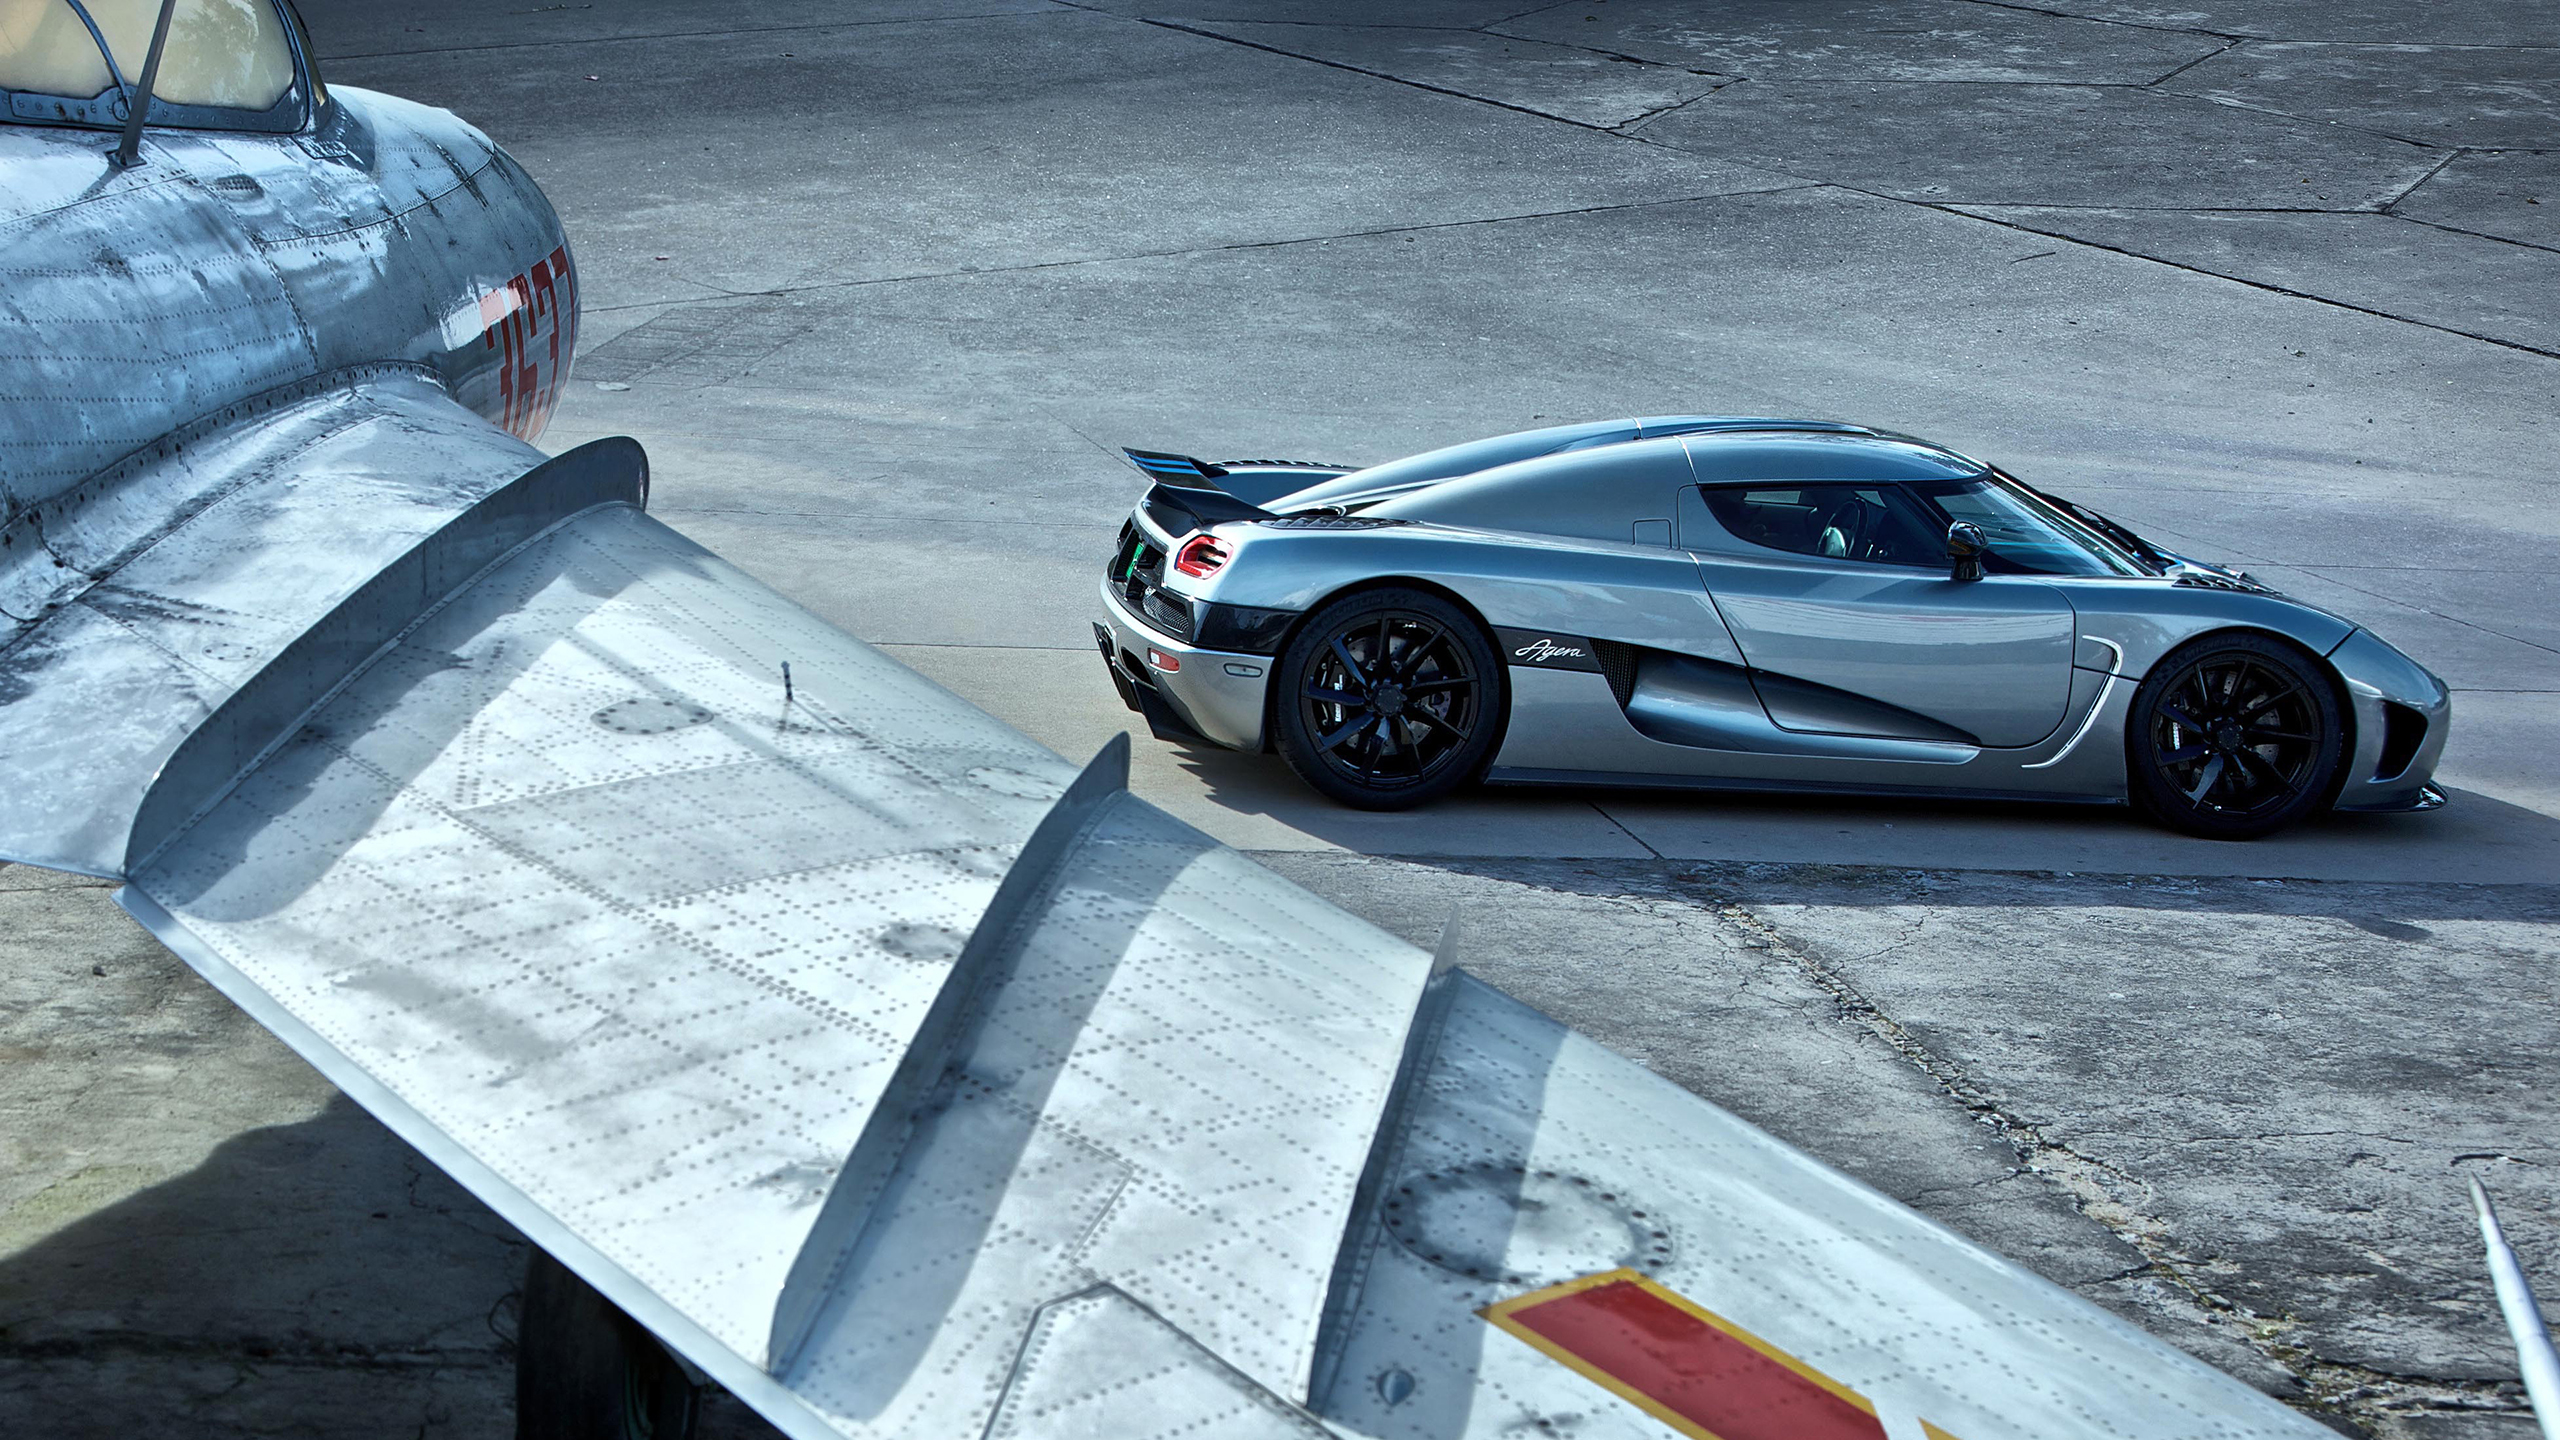 50 Super Sports Car Wallpapers Thatll Blow Your Desktop Away 2560x1440